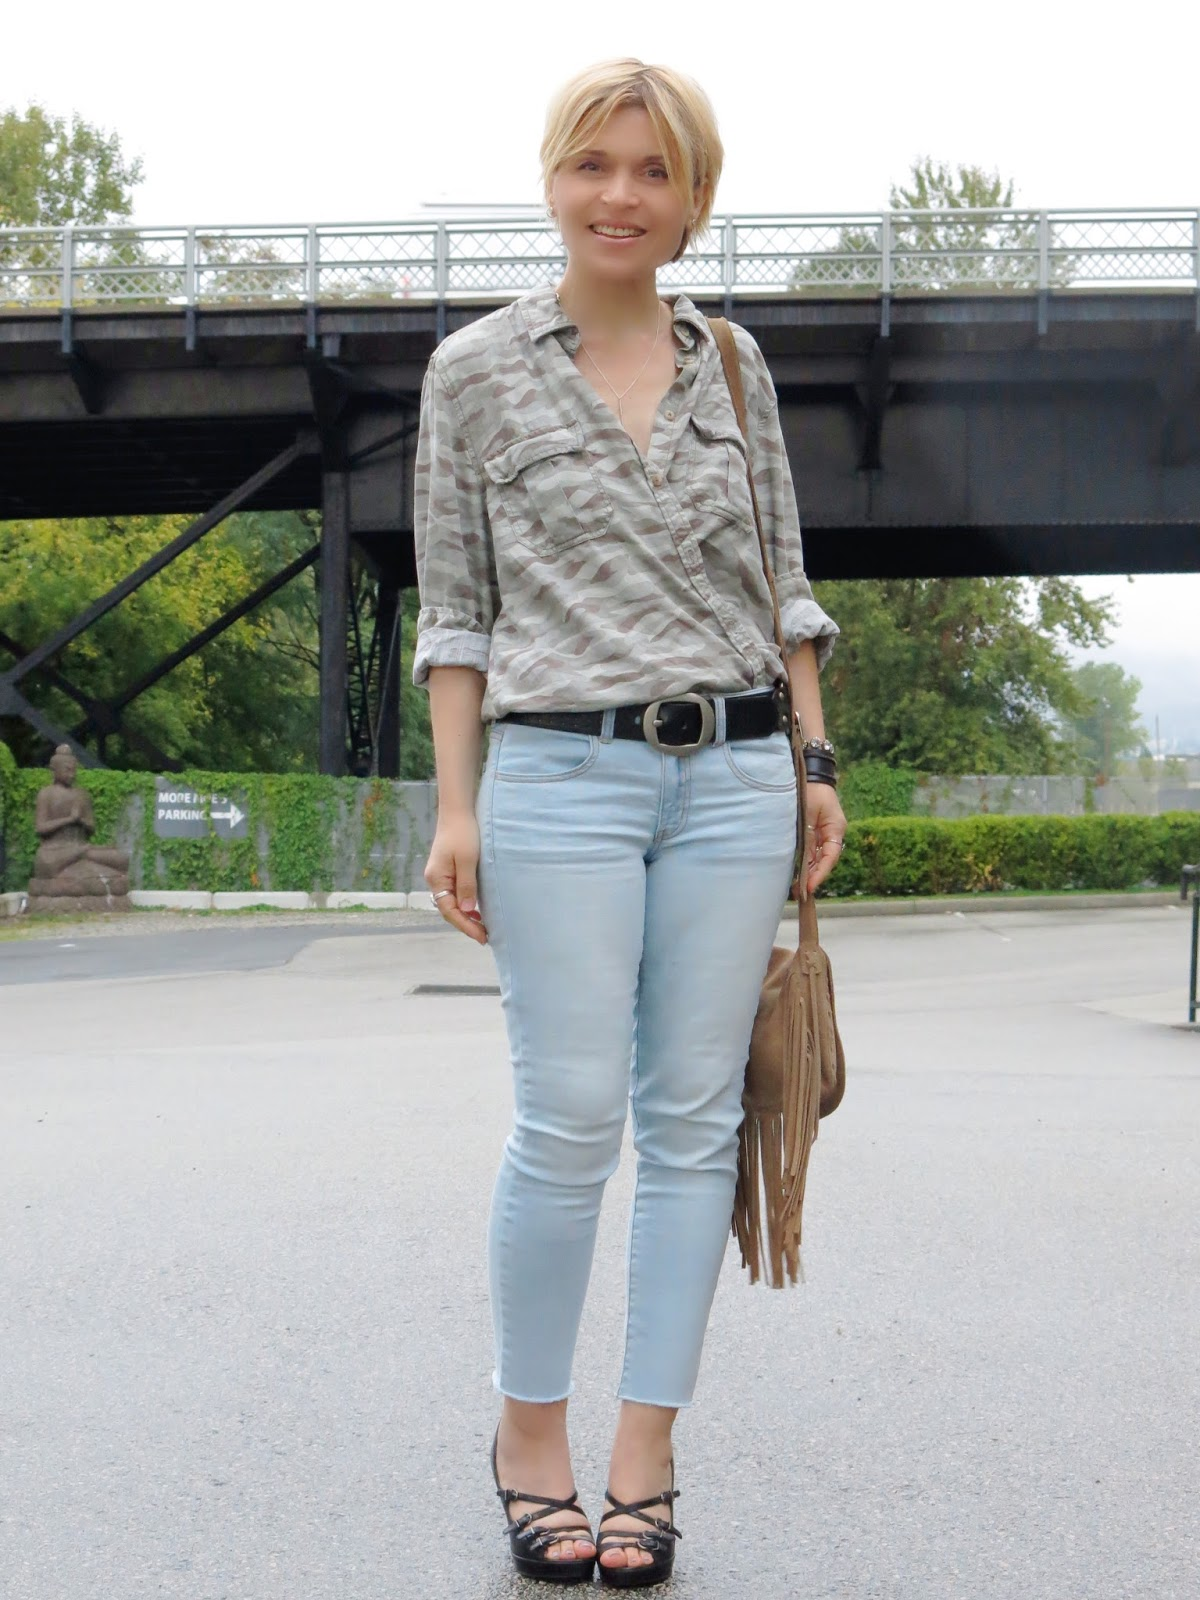 Settling in:  faded skinny jeans, camo shirt, and a fringy crossbody bag